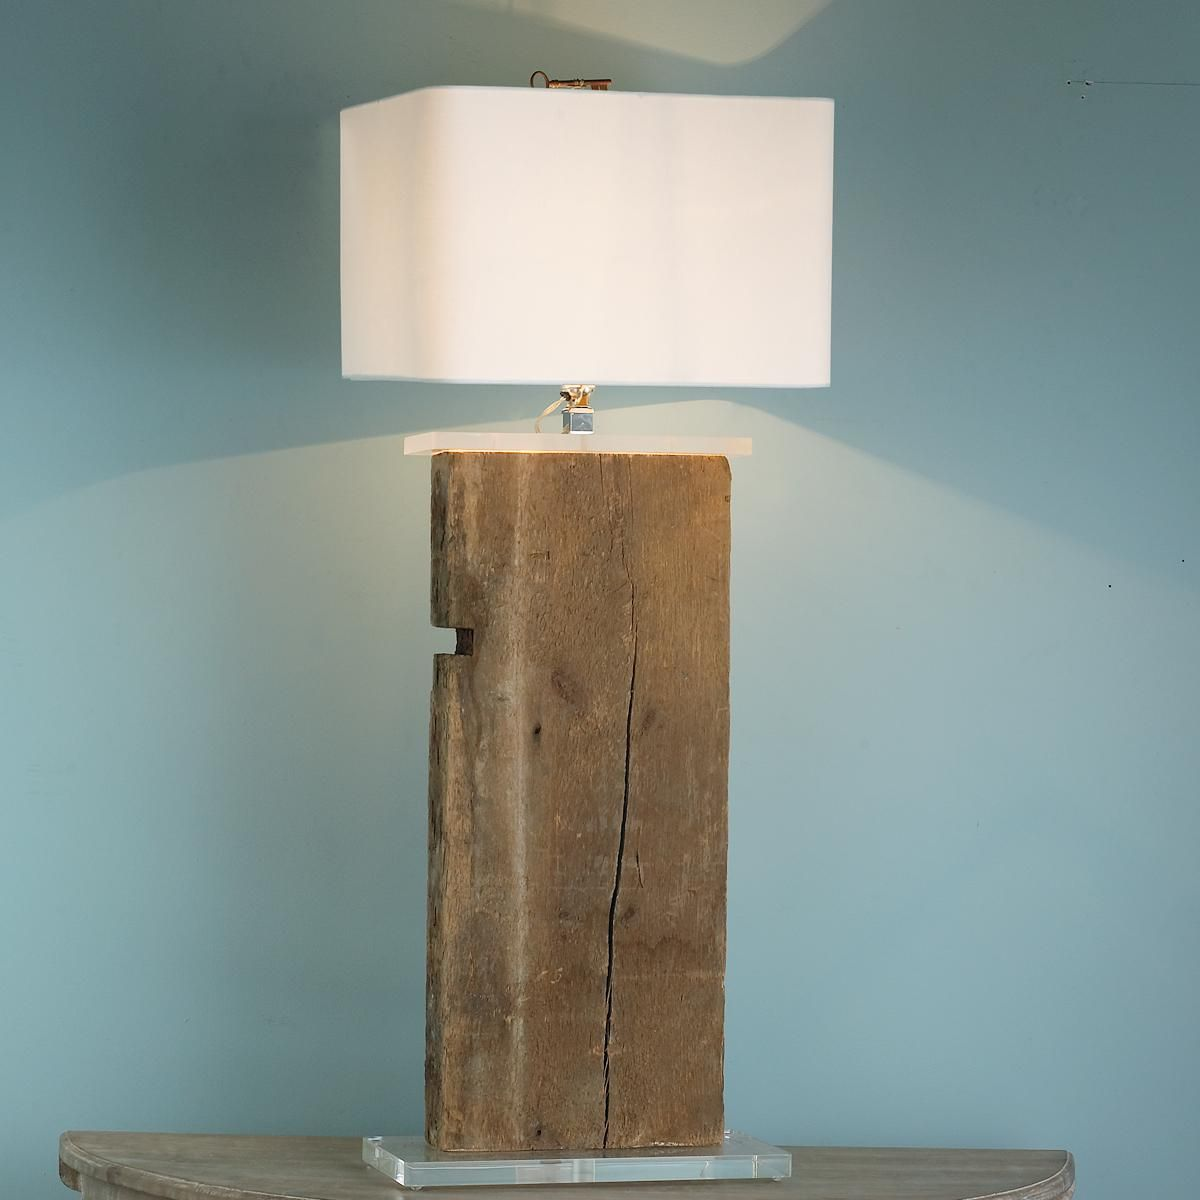 Antique 1828 Barnwood Beam Table Lamp Reclaimed Lighting Is In Vogue Take An Antique Warehouse Table Lamp Shades Antique Lamp Shades Shabby Chic Lamp Shades